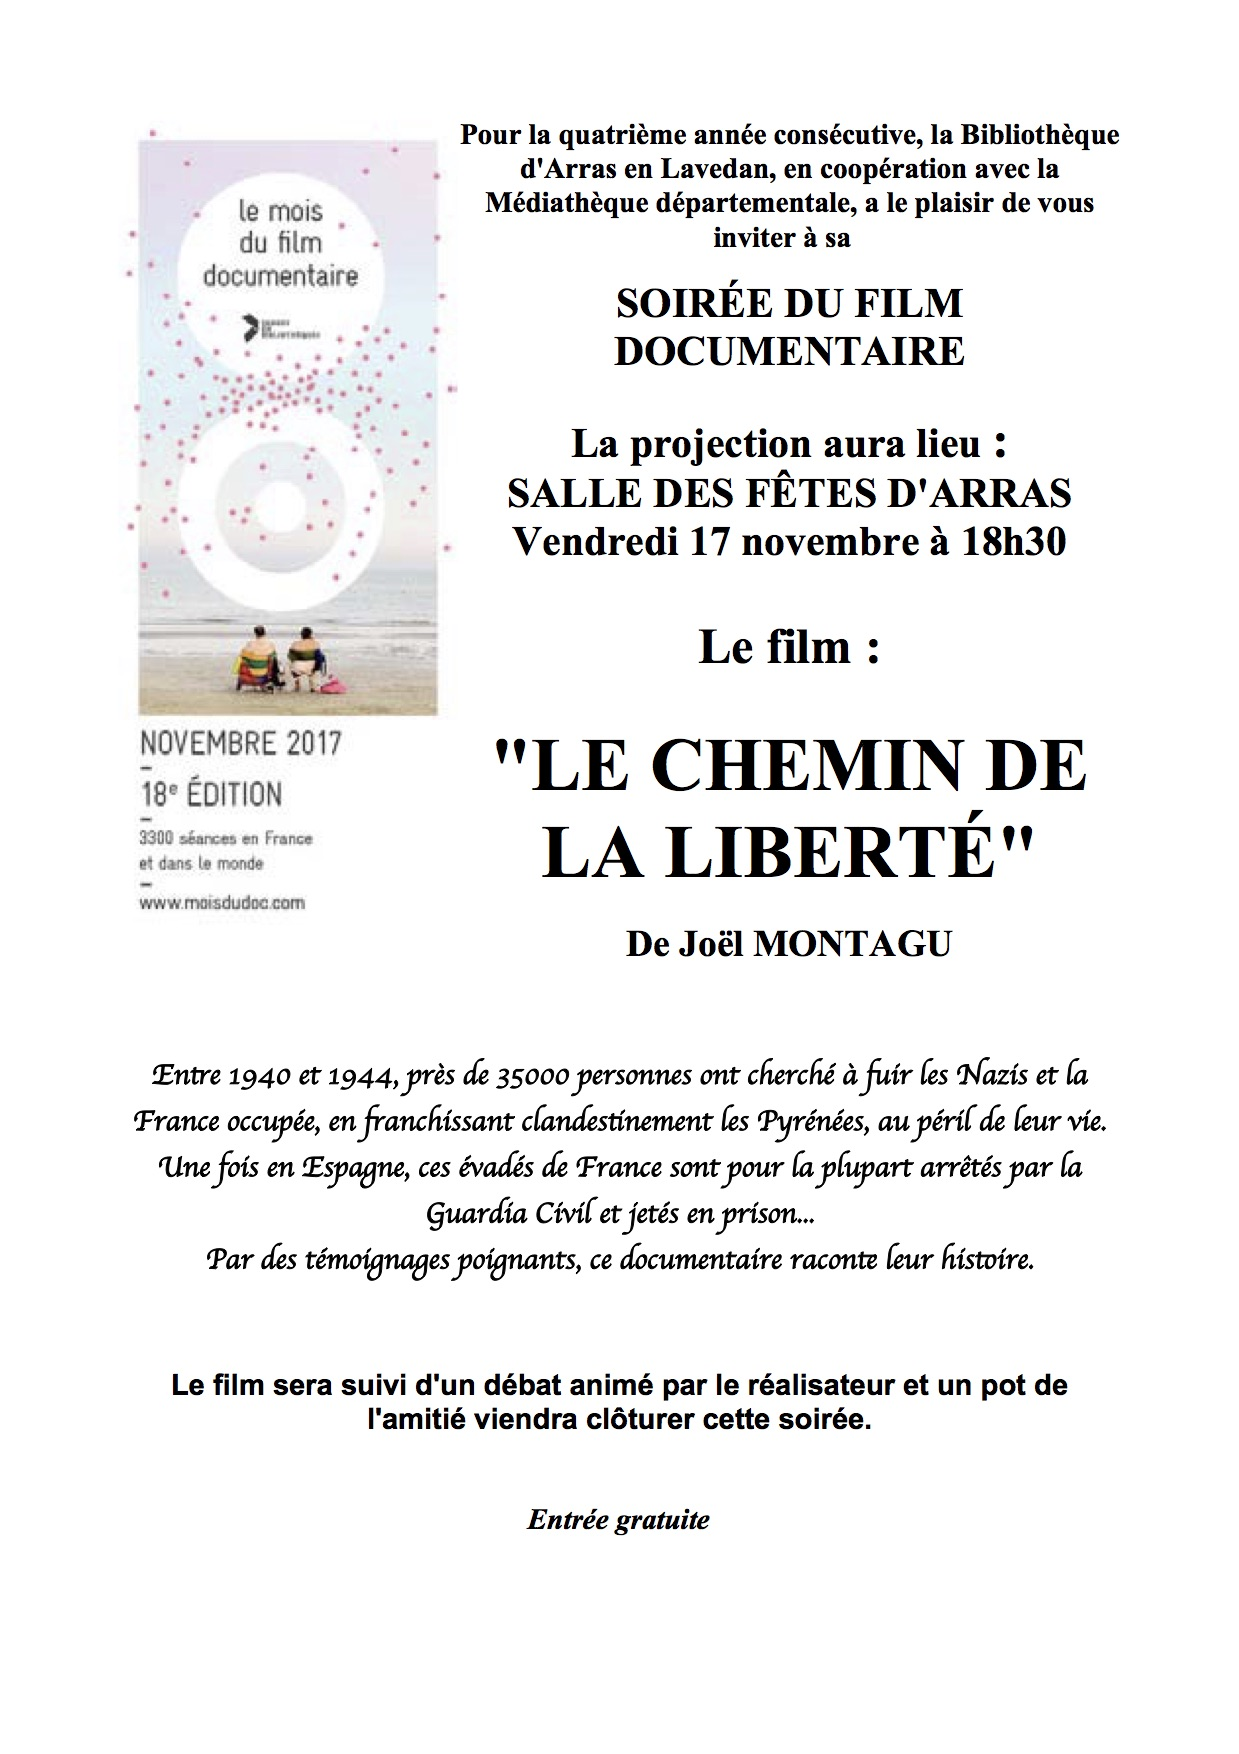 INVITATION FILM DOCUMENTAIRE BIBLIO.pdf 2017 JPG.jpg